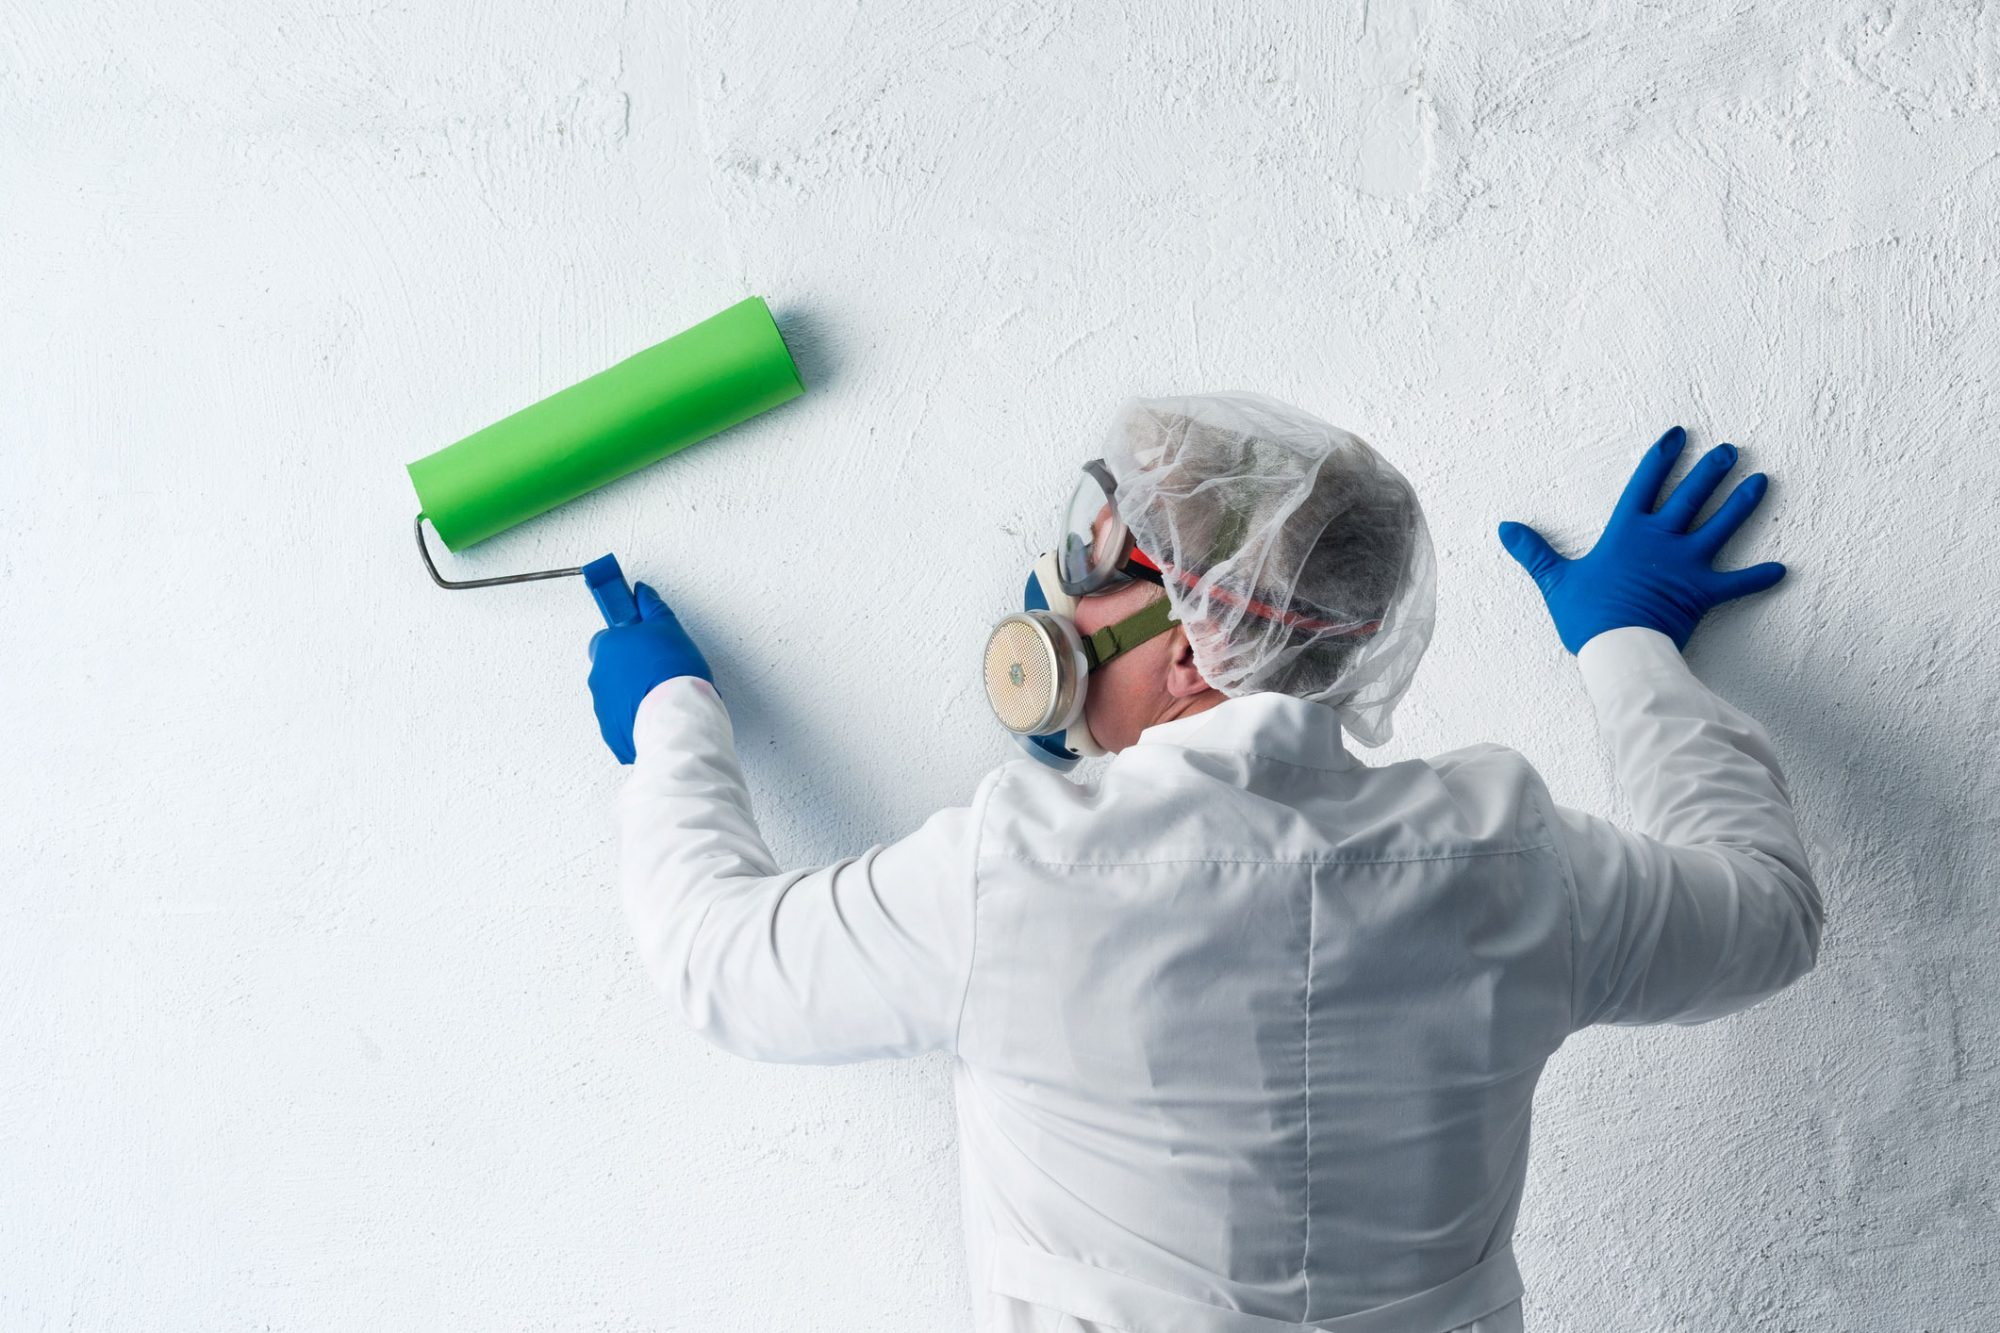 Man fixing lead paint wall with paint, mask, and gloves